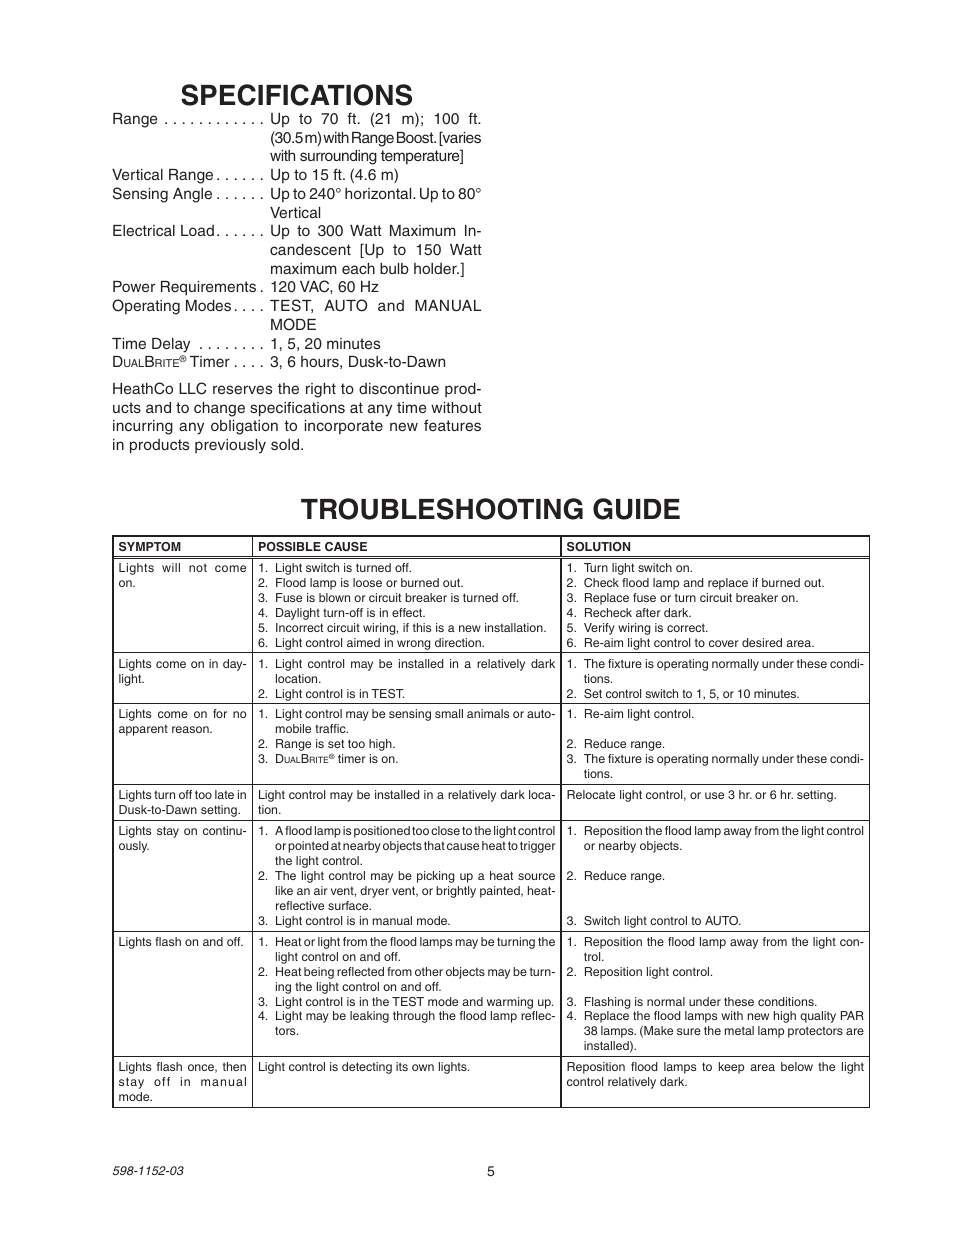 Specifications Troubleshooting Guide Heath Zenith